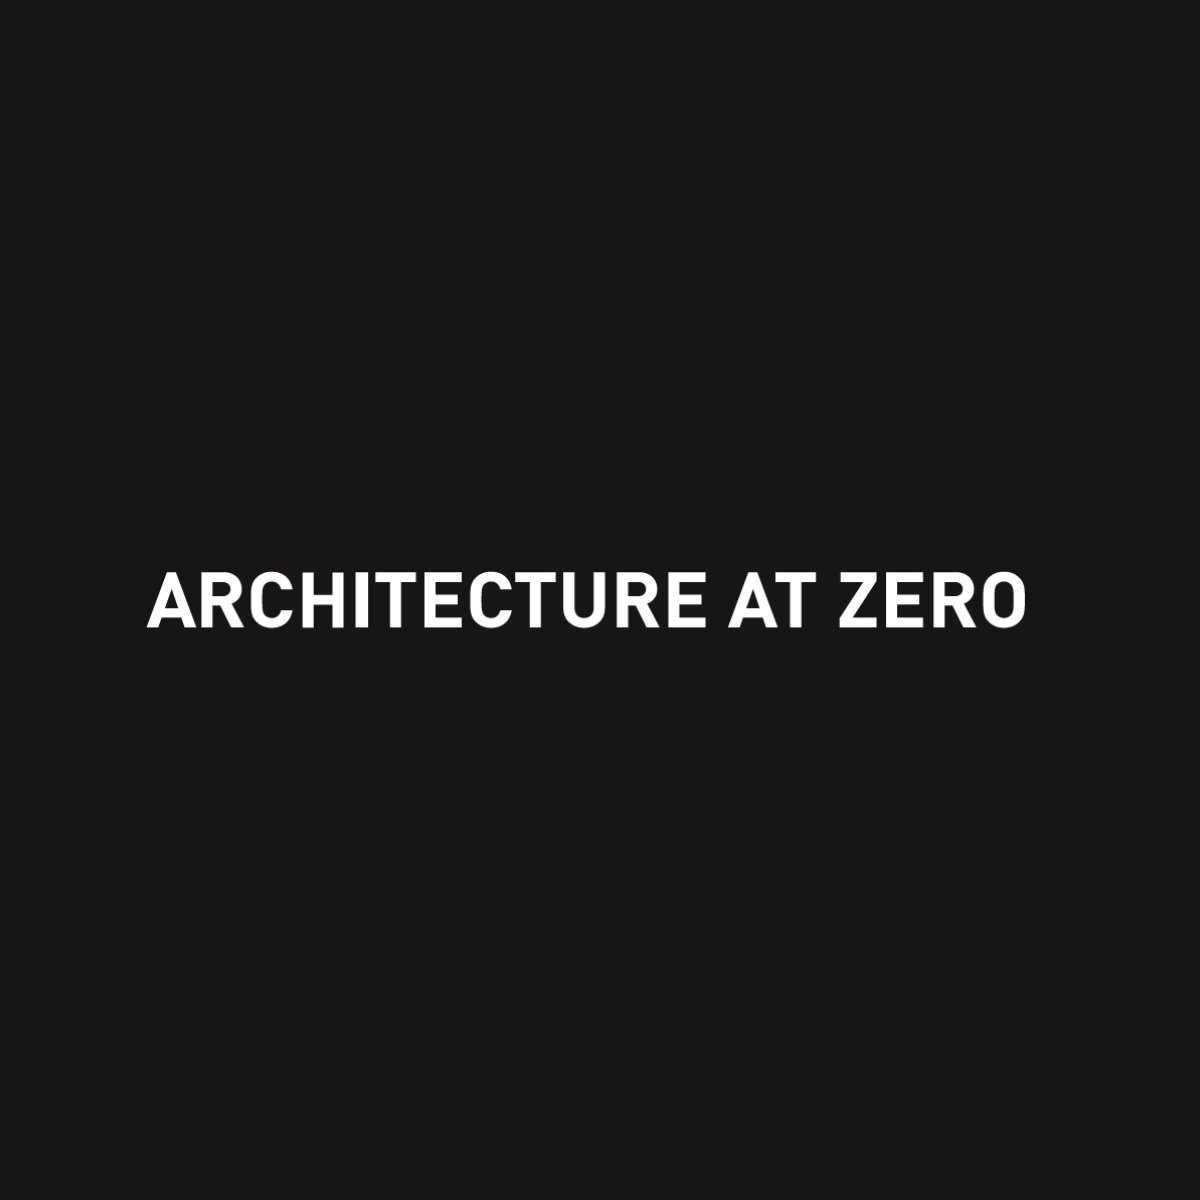 AIA CA Launches 2020 Architecture at Zero Competition